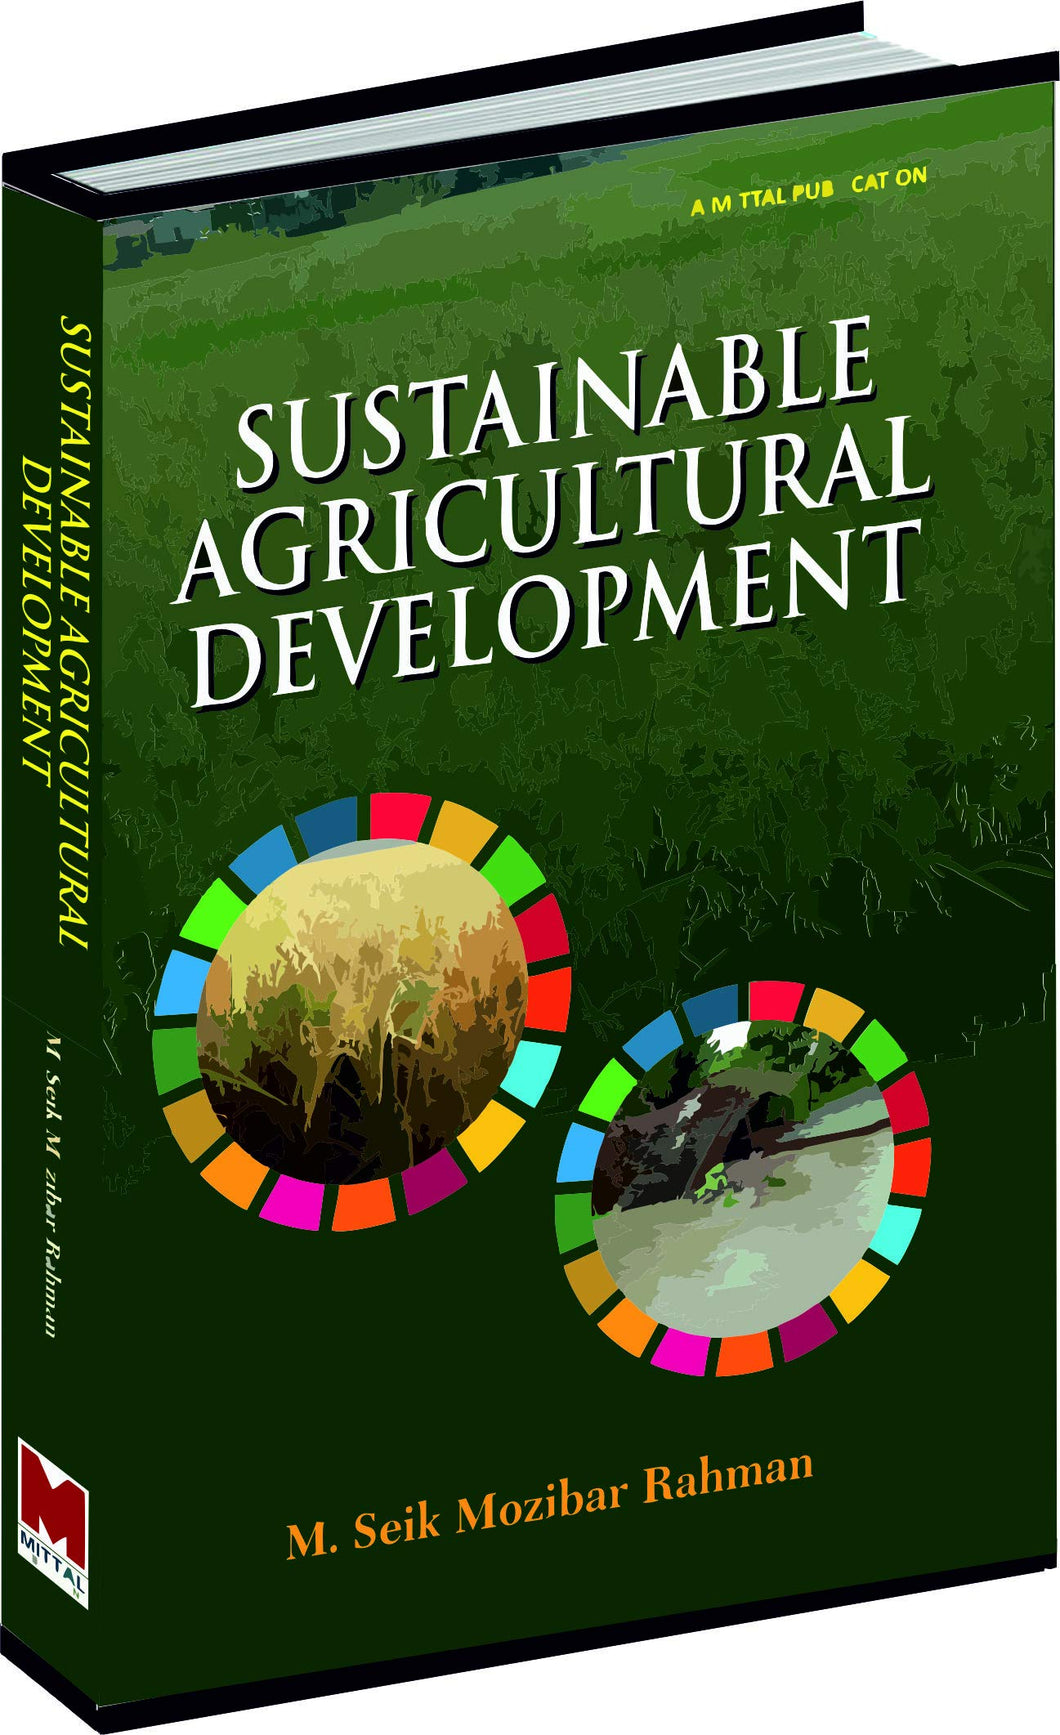 Sustainable Agriculture Development by M.Seik Mozibar Rahaman